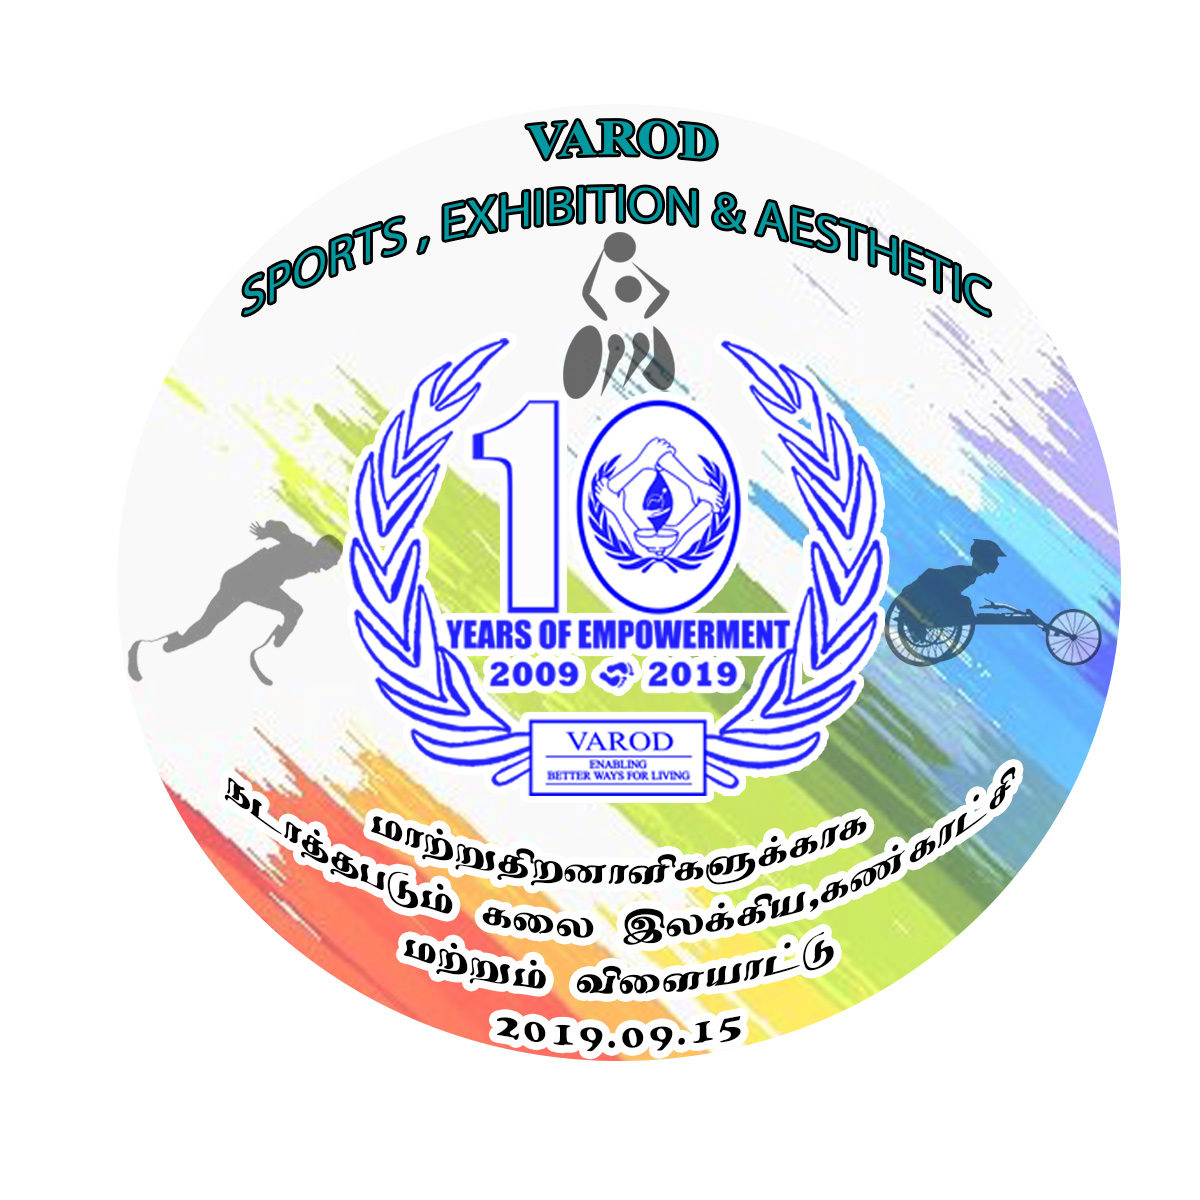 Grand Festive of Differently: VAROD Sports, Exhibition & Aesthetic Fiesta 2019